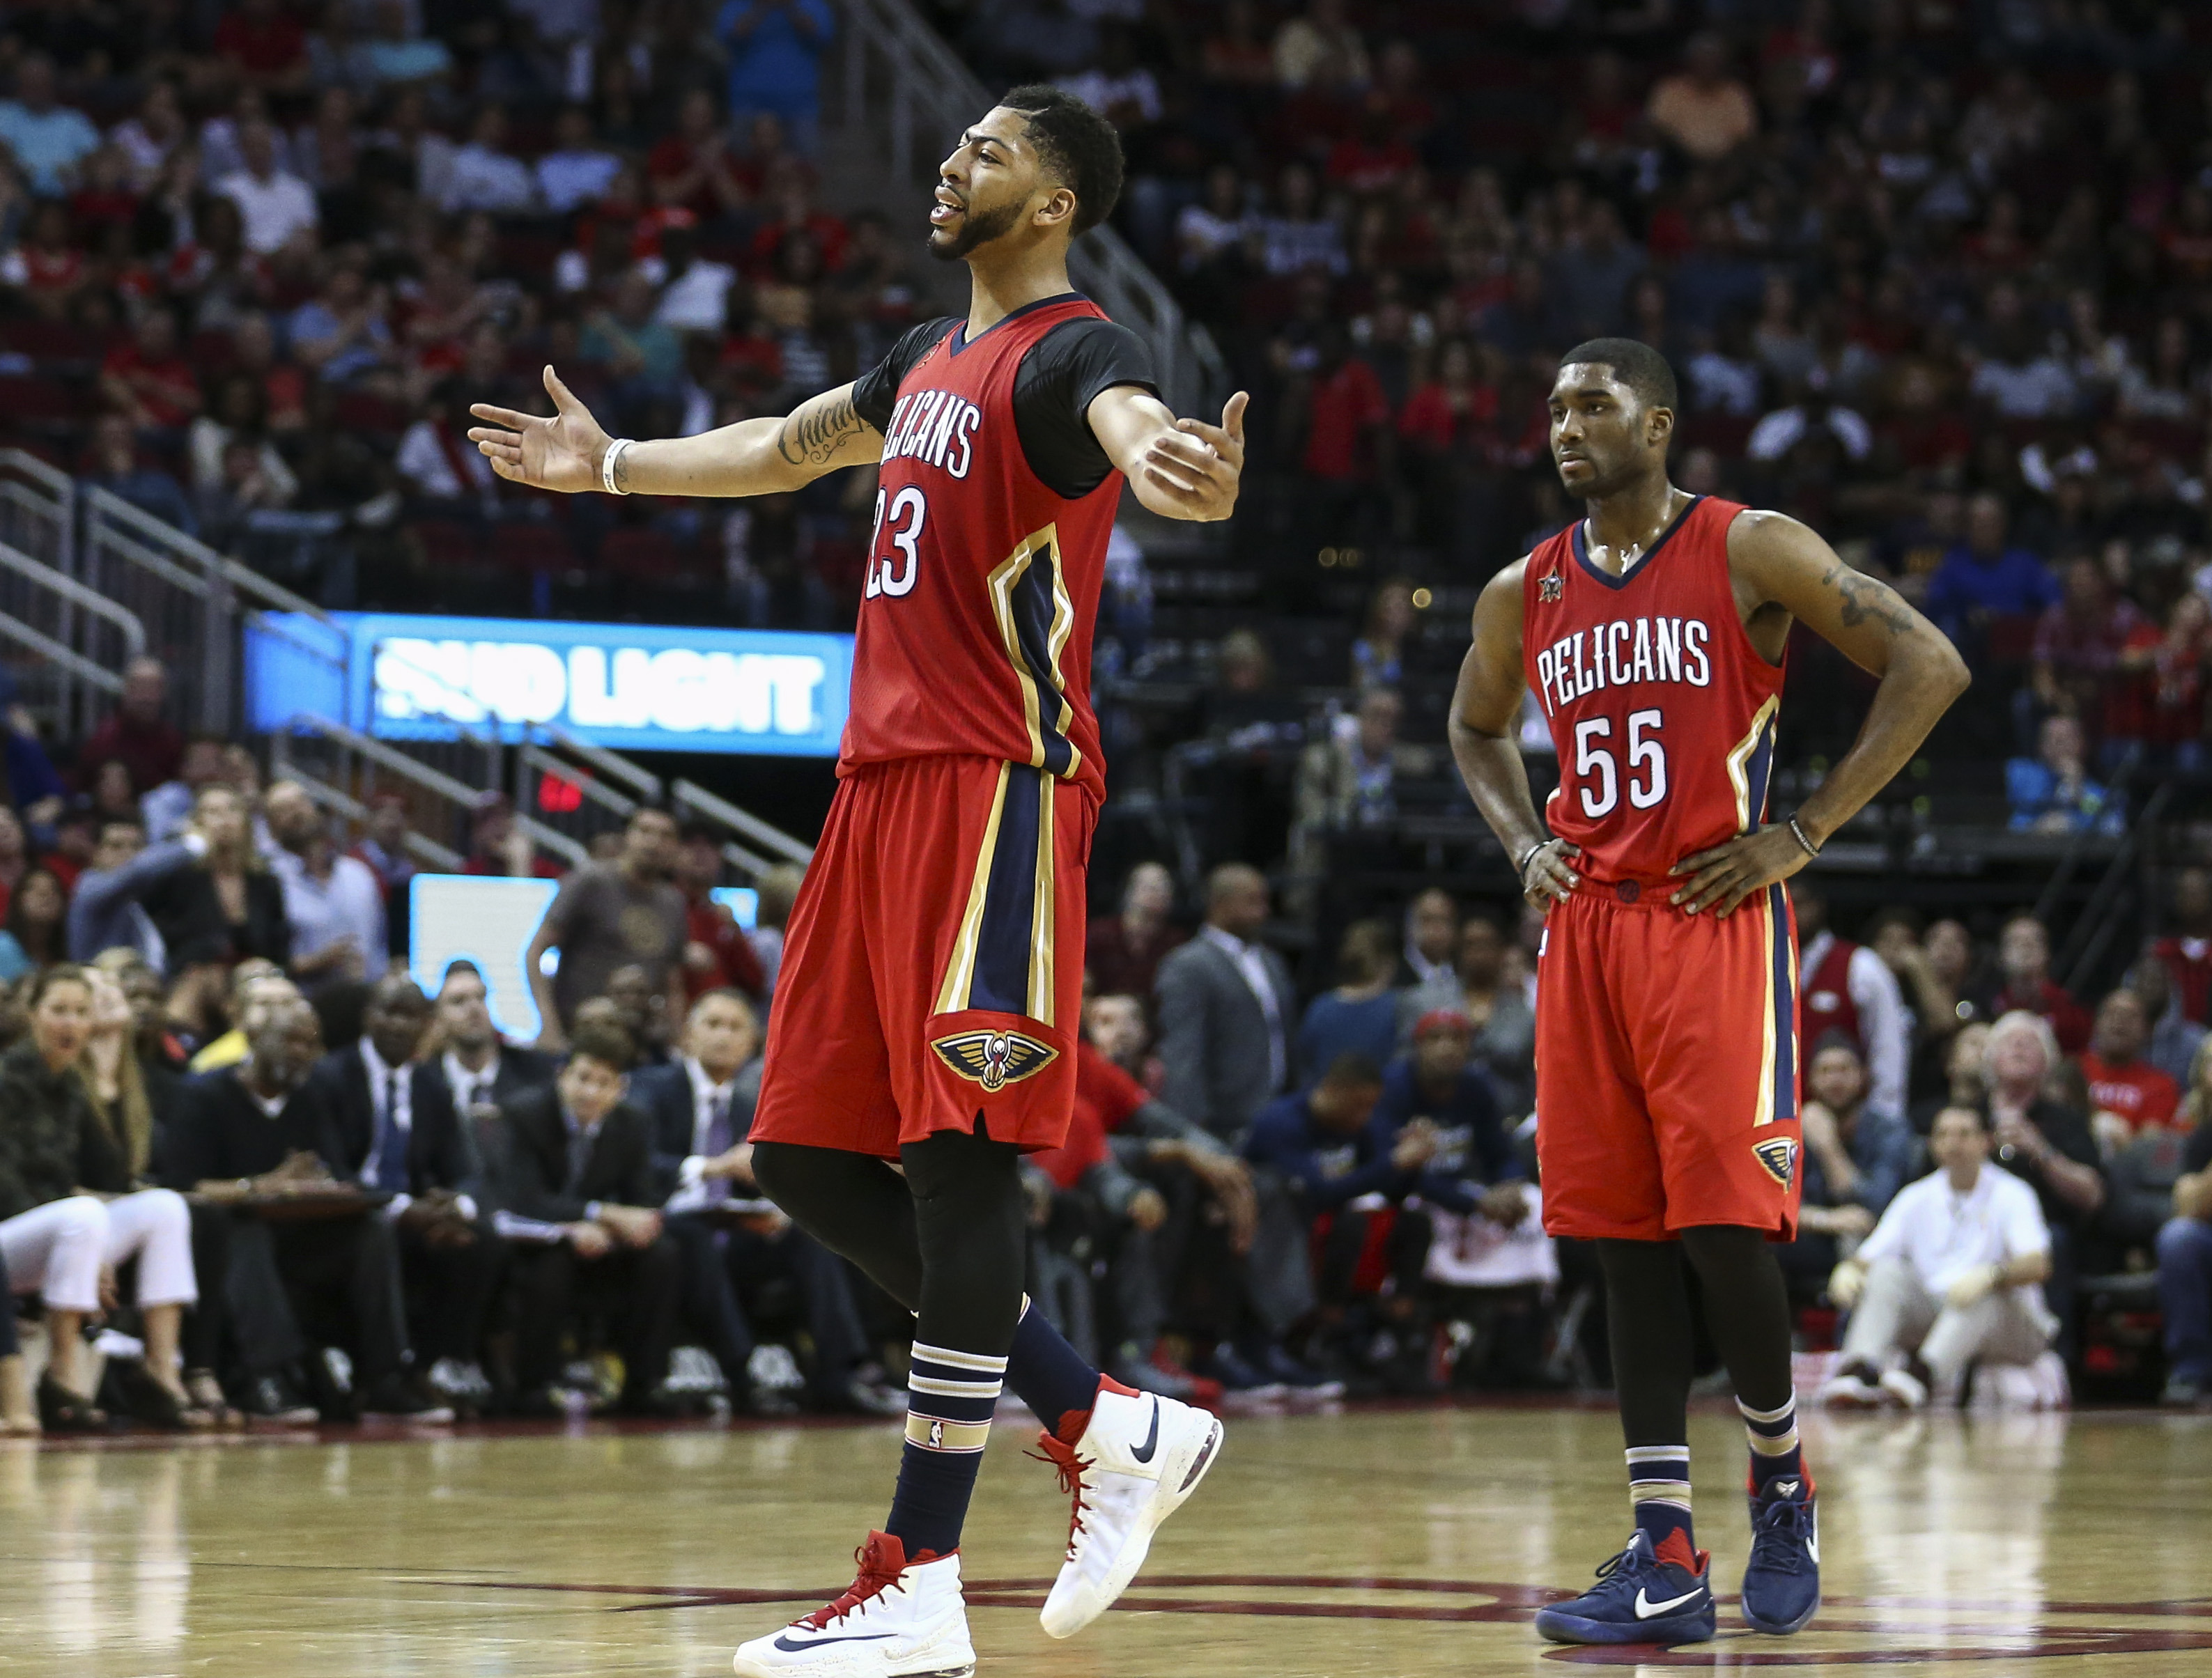 9968845-nba-new-orleans-pelicans-at-houston-rockets